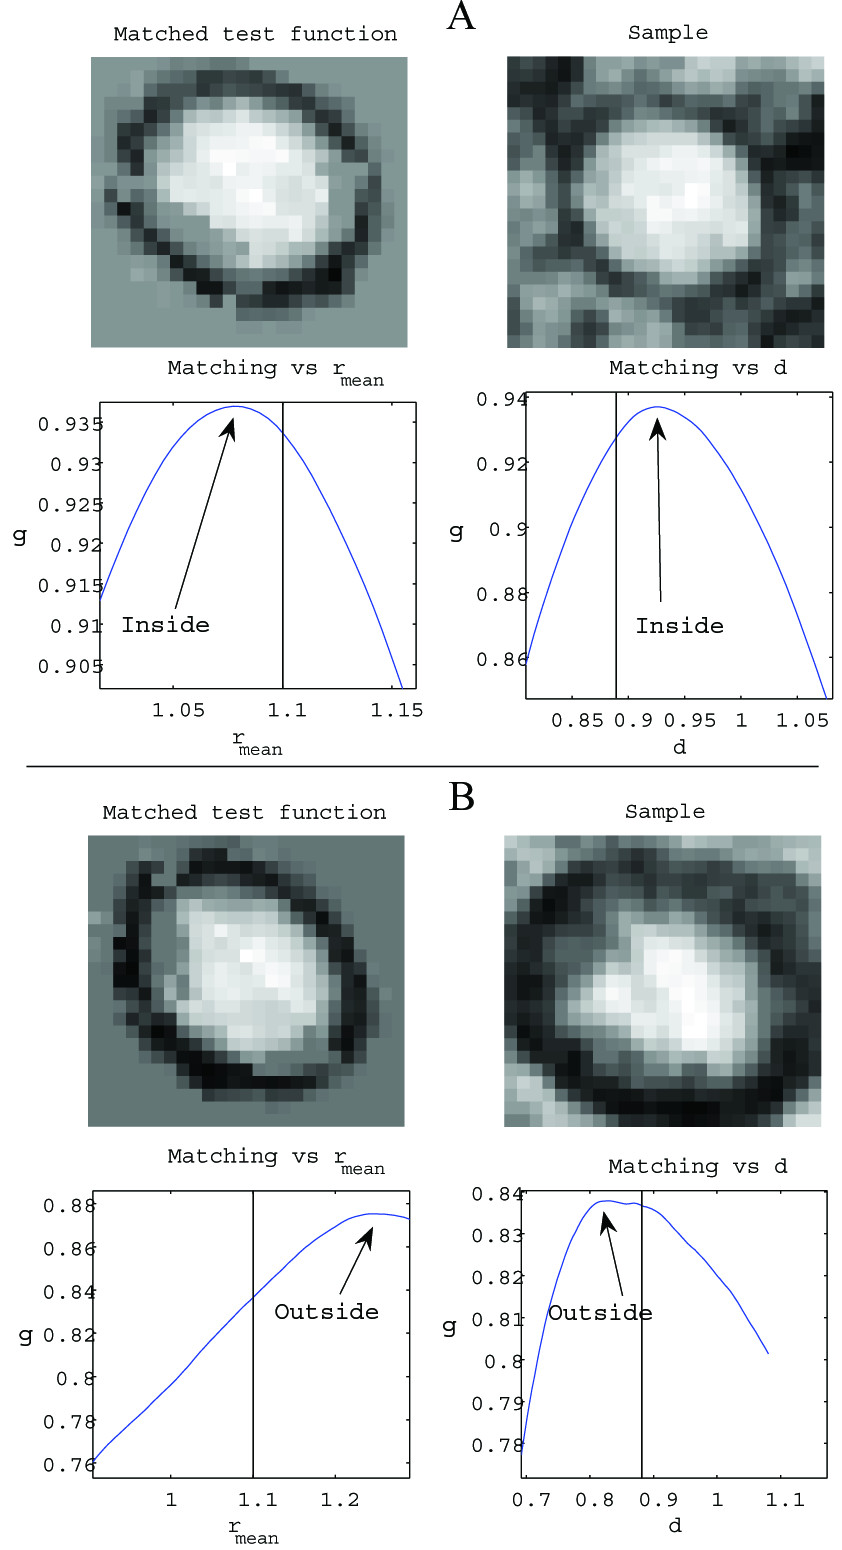 https://static-content.springer.com/image/art%3A10.1186%2F1743-422X-3-57/MediaObjects/12985_2006_Article_164_Fig9_HTML.jpg